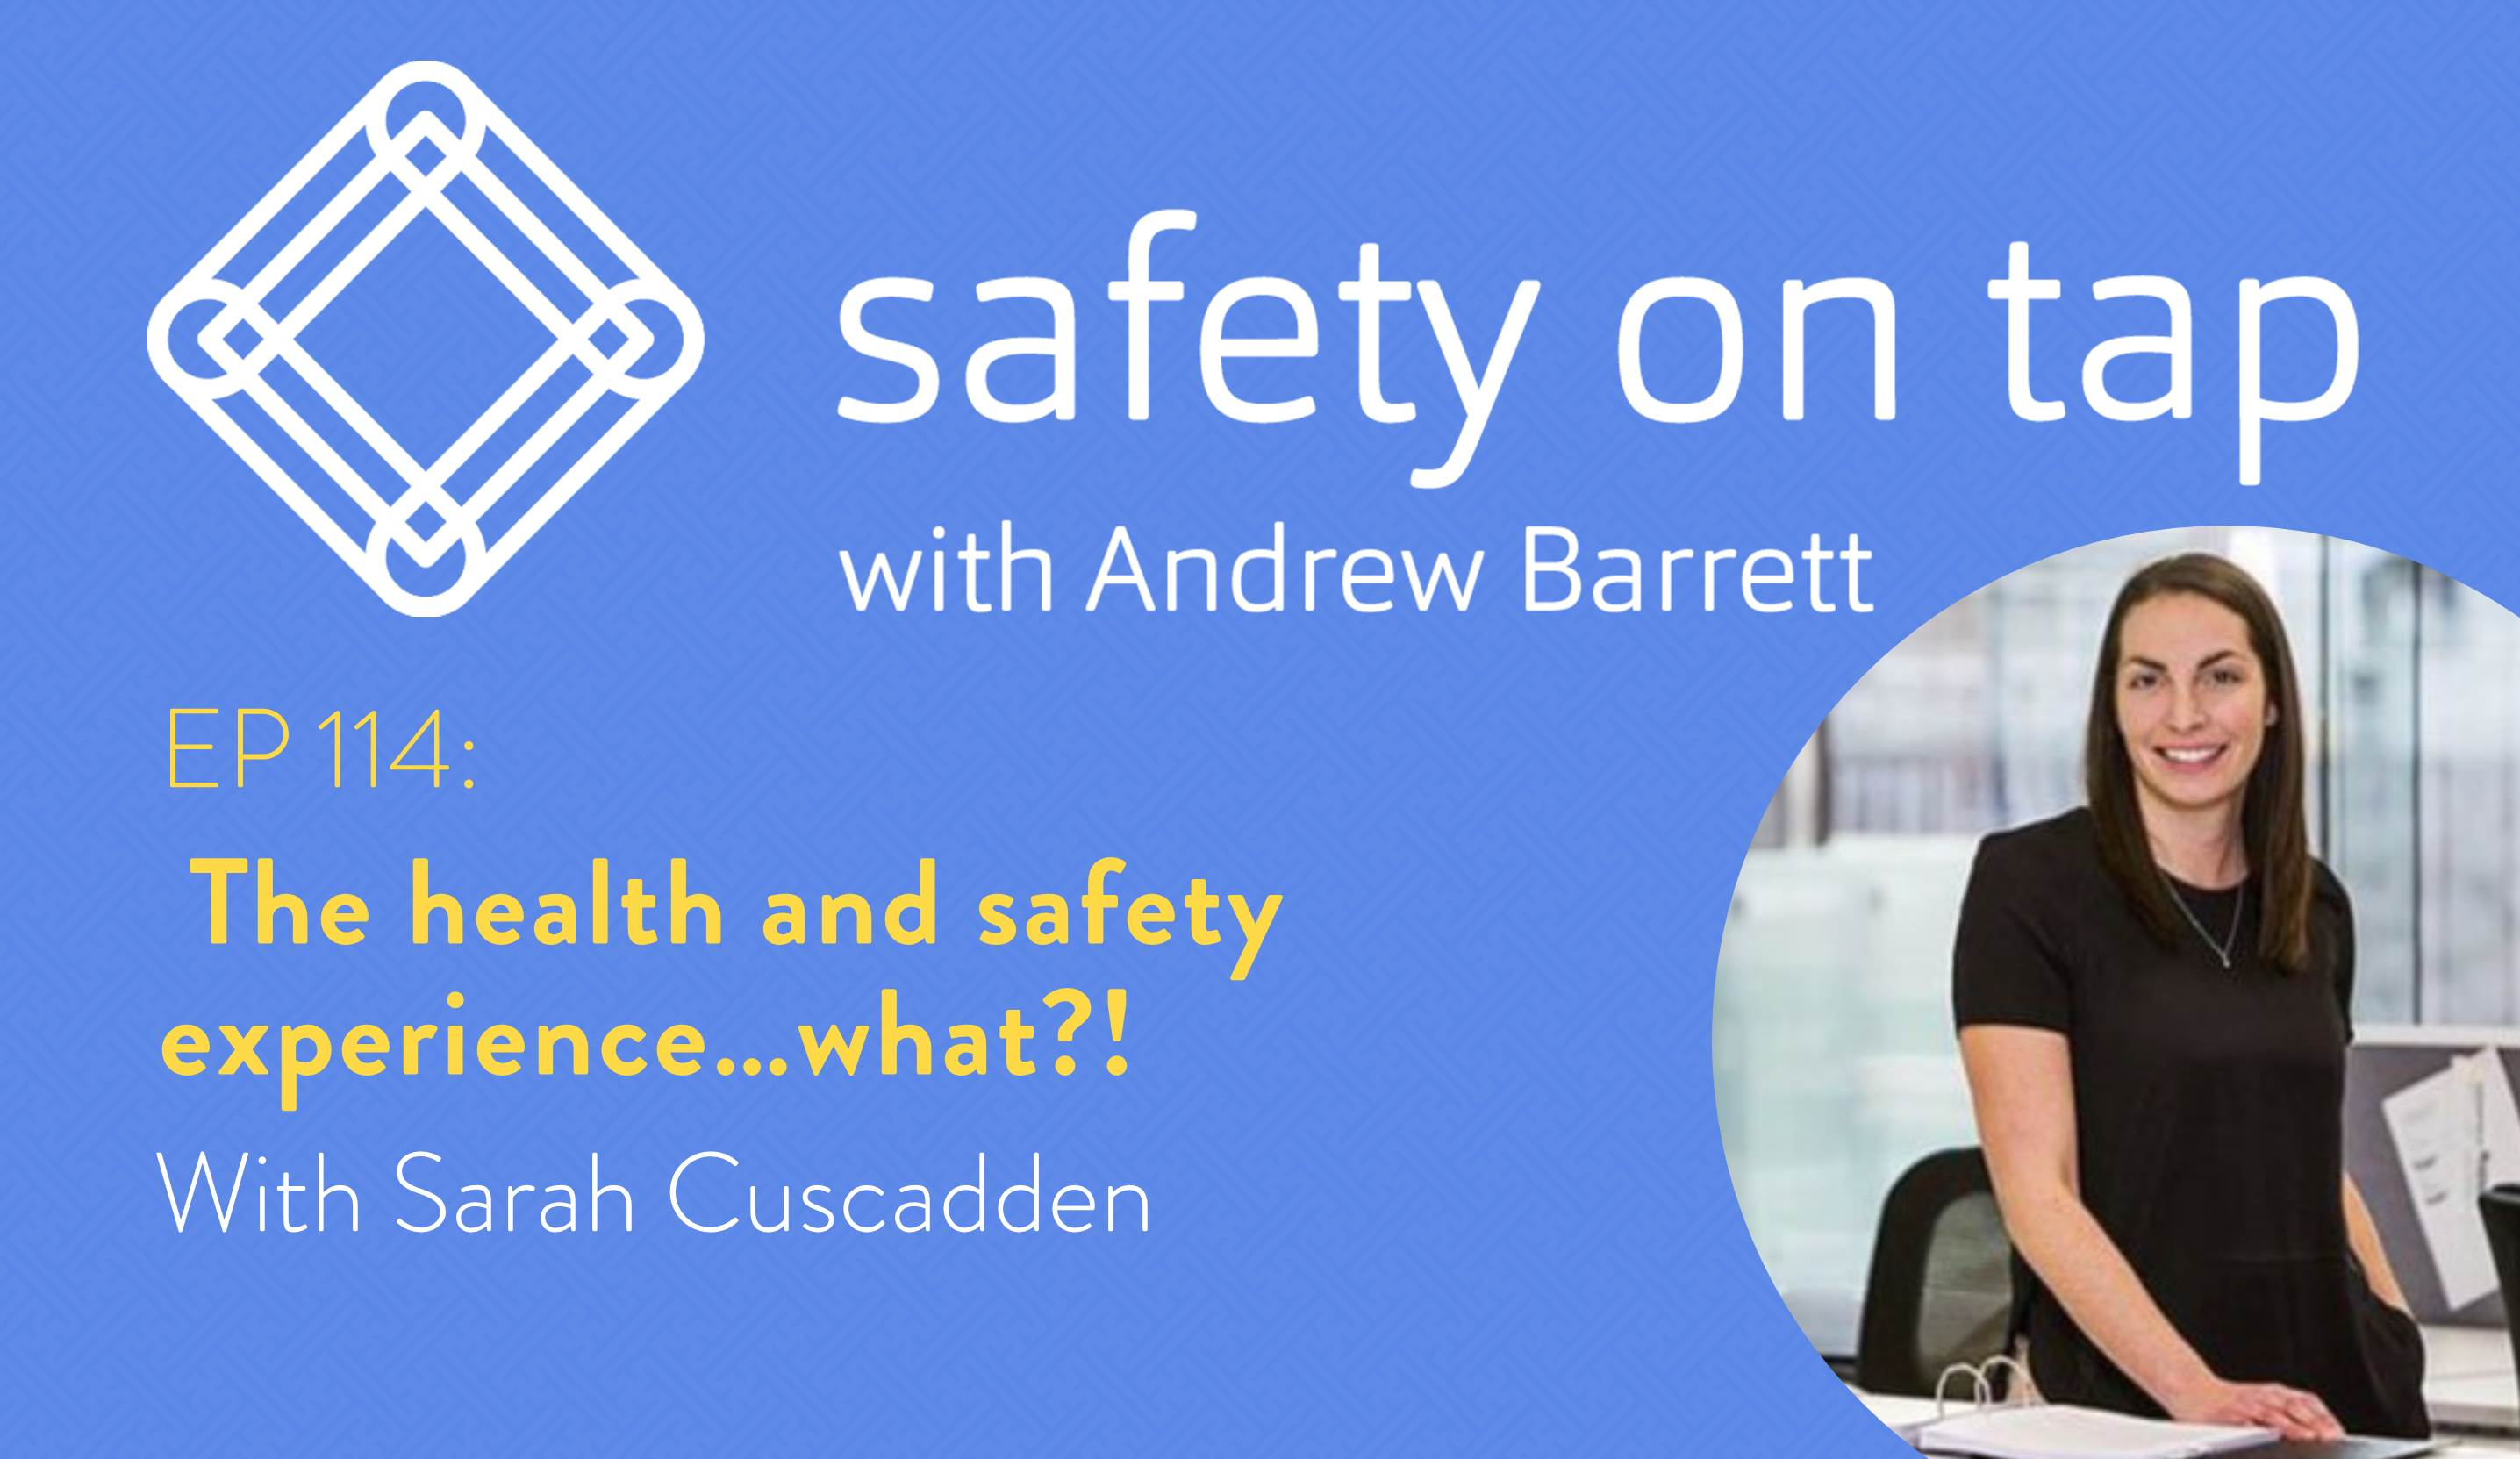 Ep114: The health and safety experience…what?! With Sarah Cuscadden